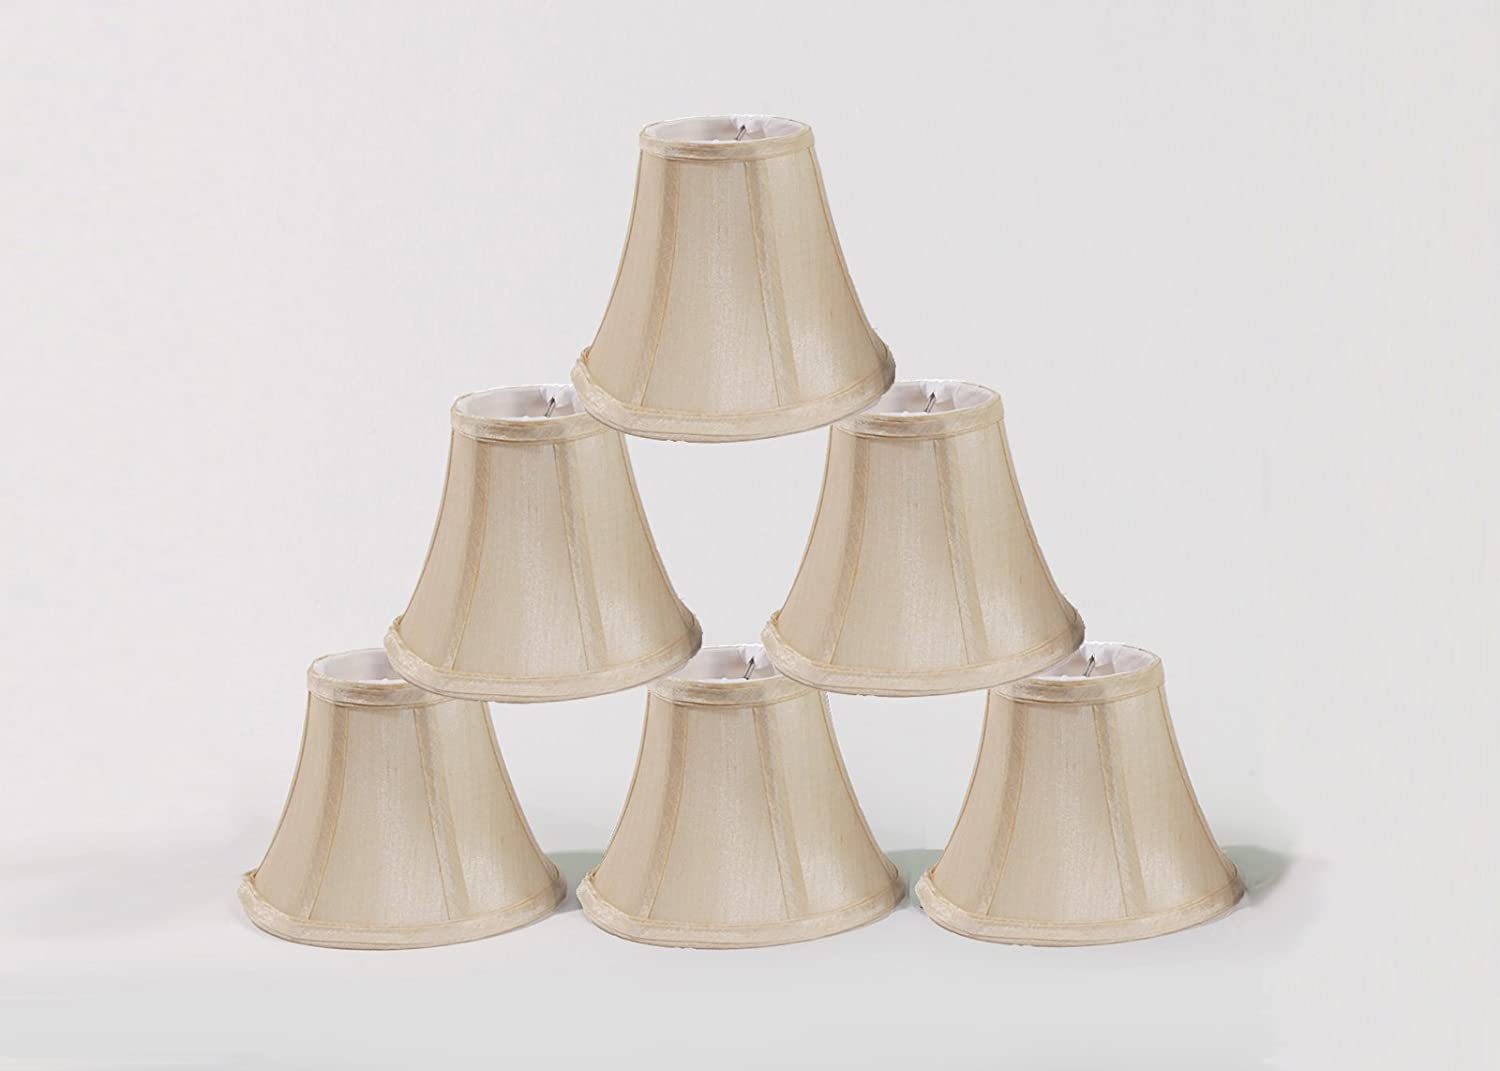 Urbanest chandelier lamp shades set of 6 soft bell 3x 6x 5 urbanest chandelier lamp shades set of 6 soft bell 3x 6x 5 cream clip on amazon arubaitofo Choice Image